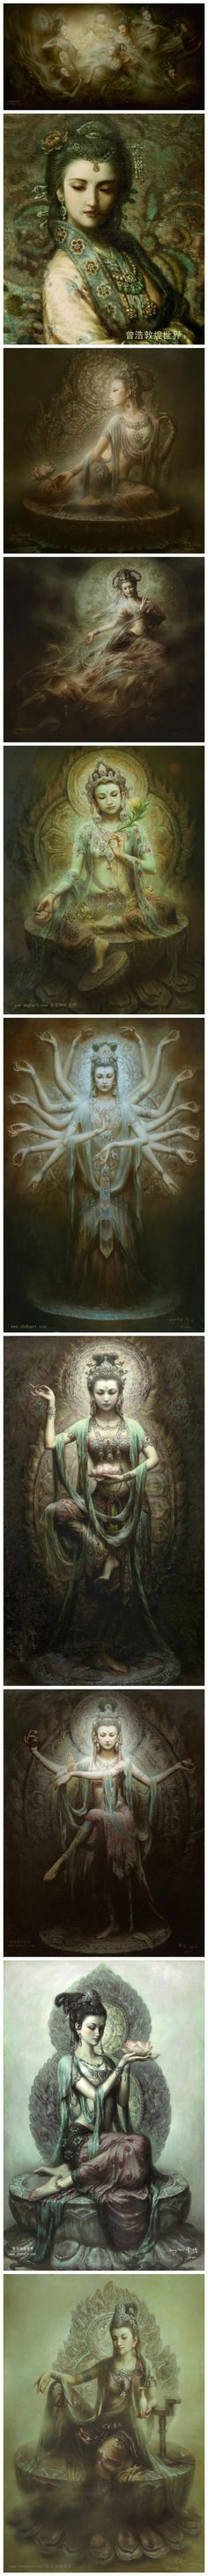 The breathtaking beauty of the many faces of our Master of Light ✨Quan Yin✨ she symbolizes Love, Mercy, Compassion, Peace, Courage and much more...